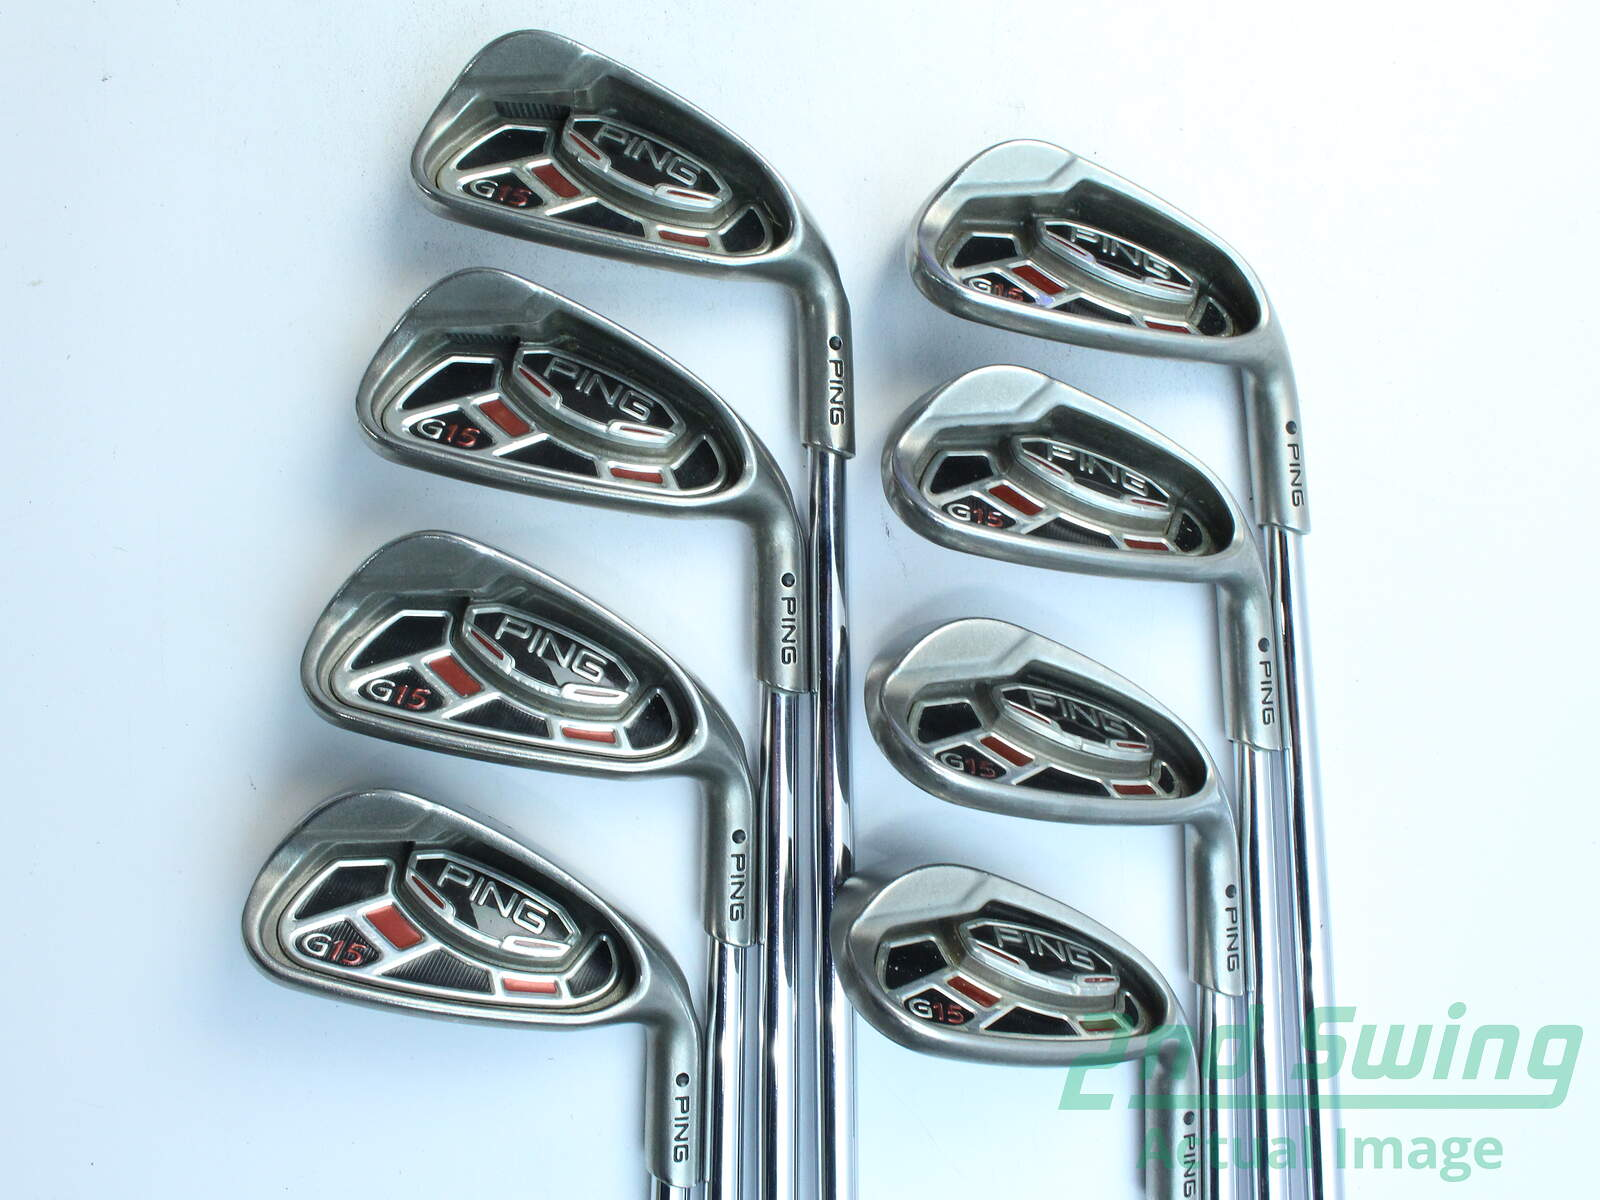 Used Ping G15 Iron Set 5-PW SW LW Ping AWT Steel Stiff Right Handed ...